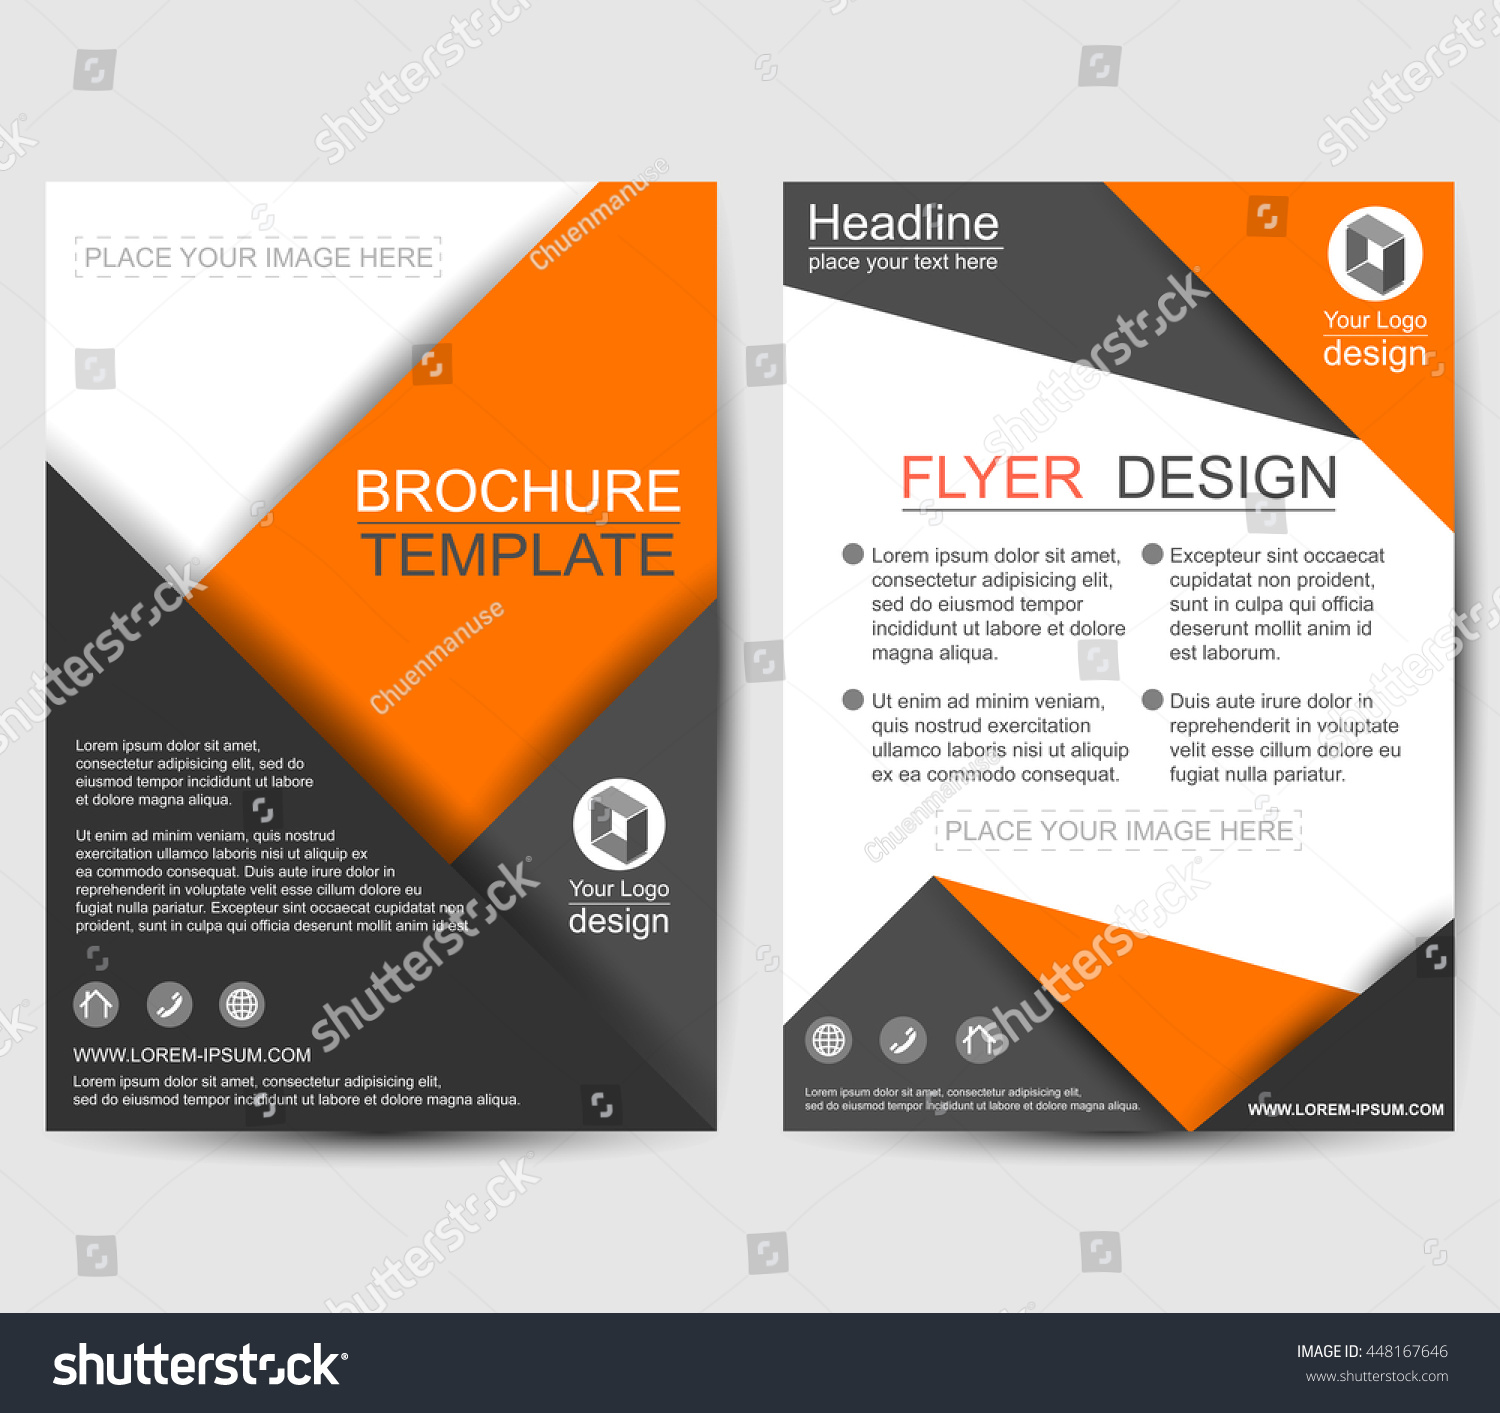 geometric paper origami brochure flyer design template vector geometric paper origami brochure flyer design template vector leaflet cover abstract background layout in